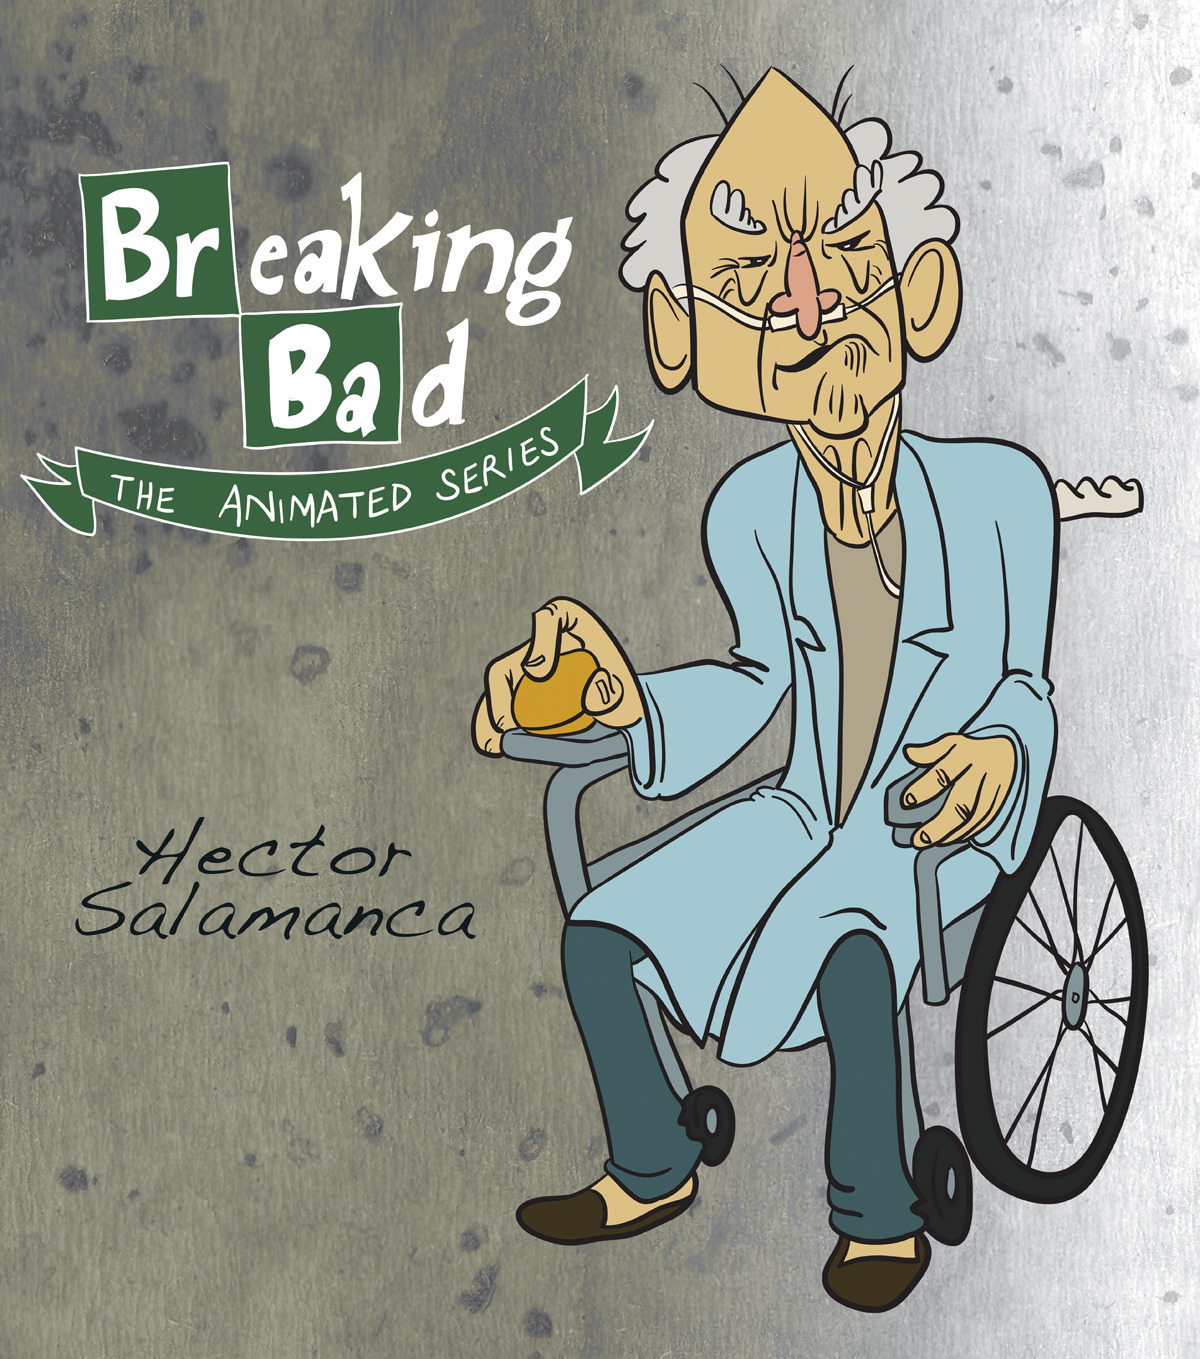 Illustrator & Photoshop / Breaking Bad: The Animated Series - Hector Salamanca.  Heisenberg on deck.